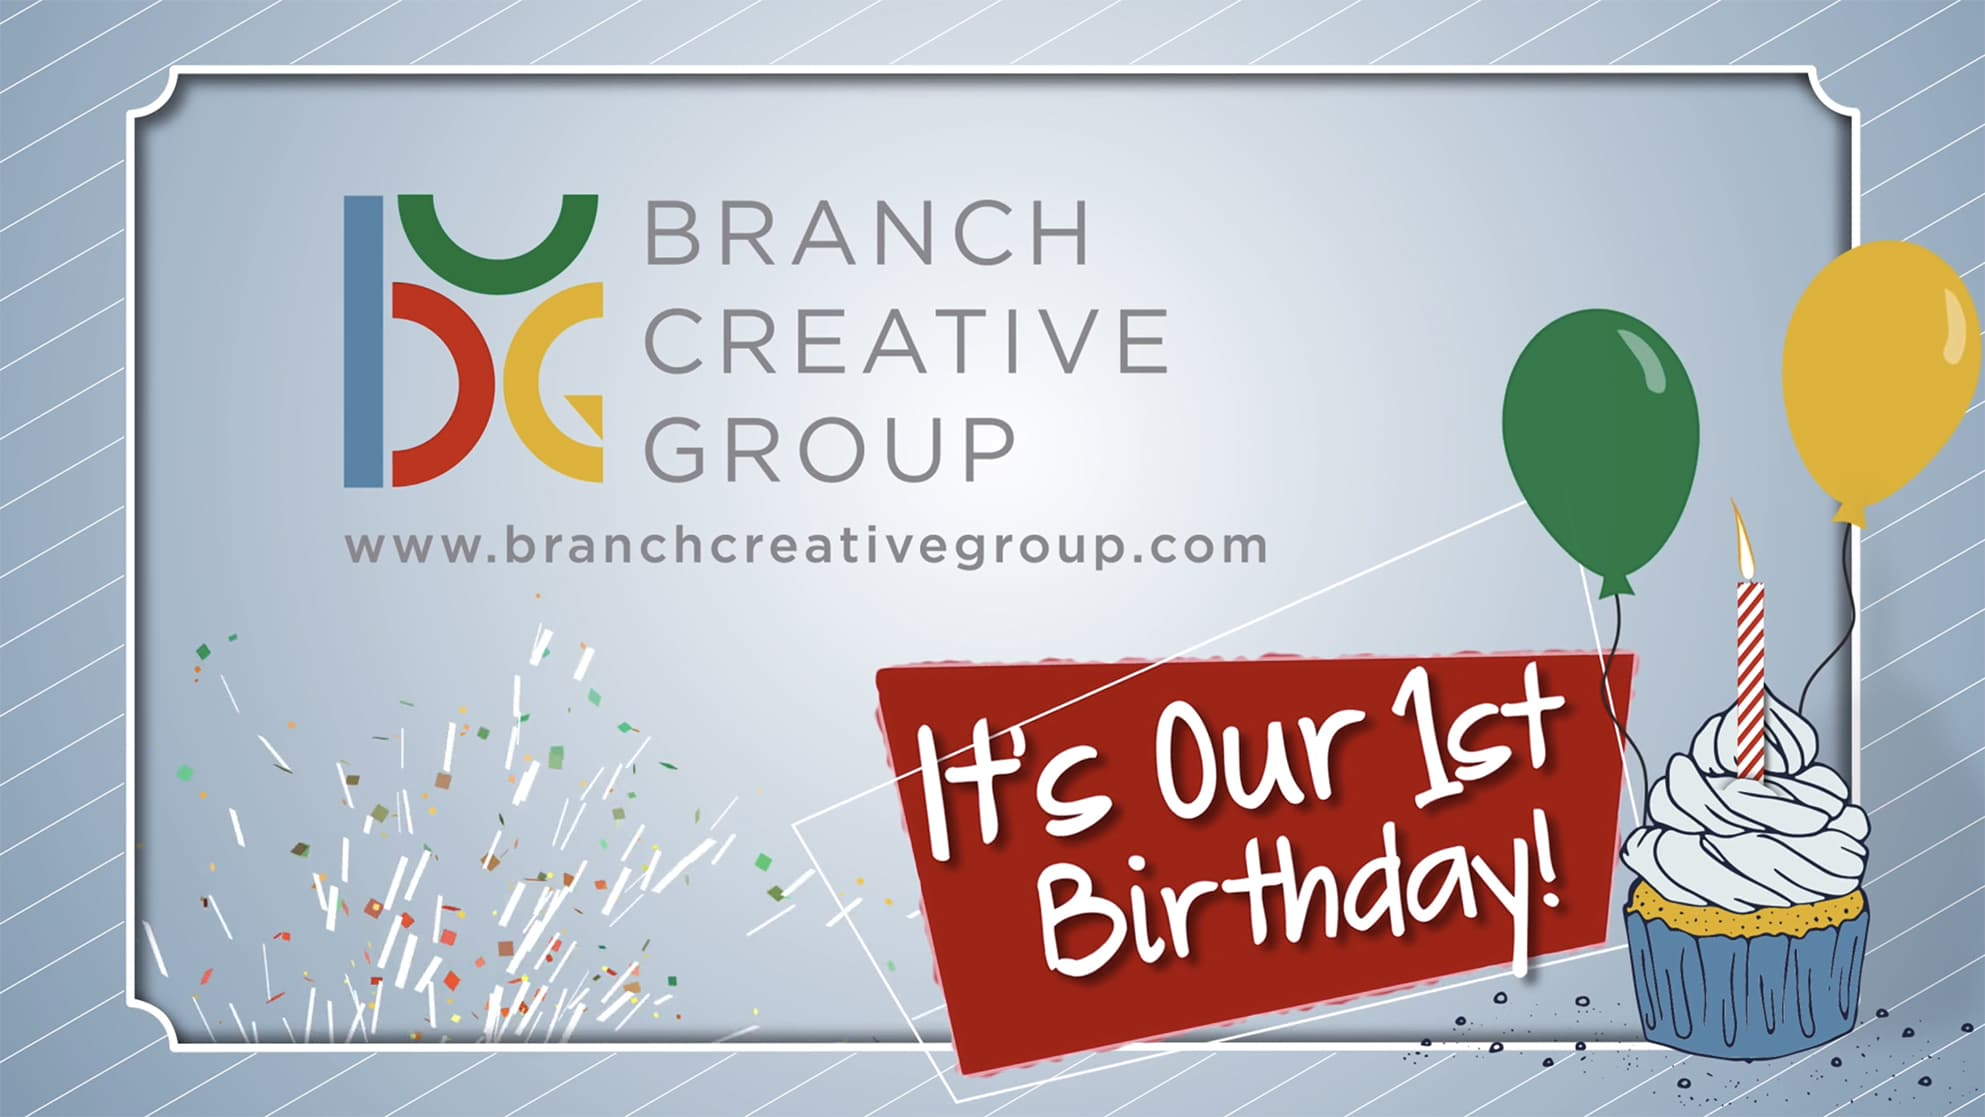 Branch Creative First Birthday!